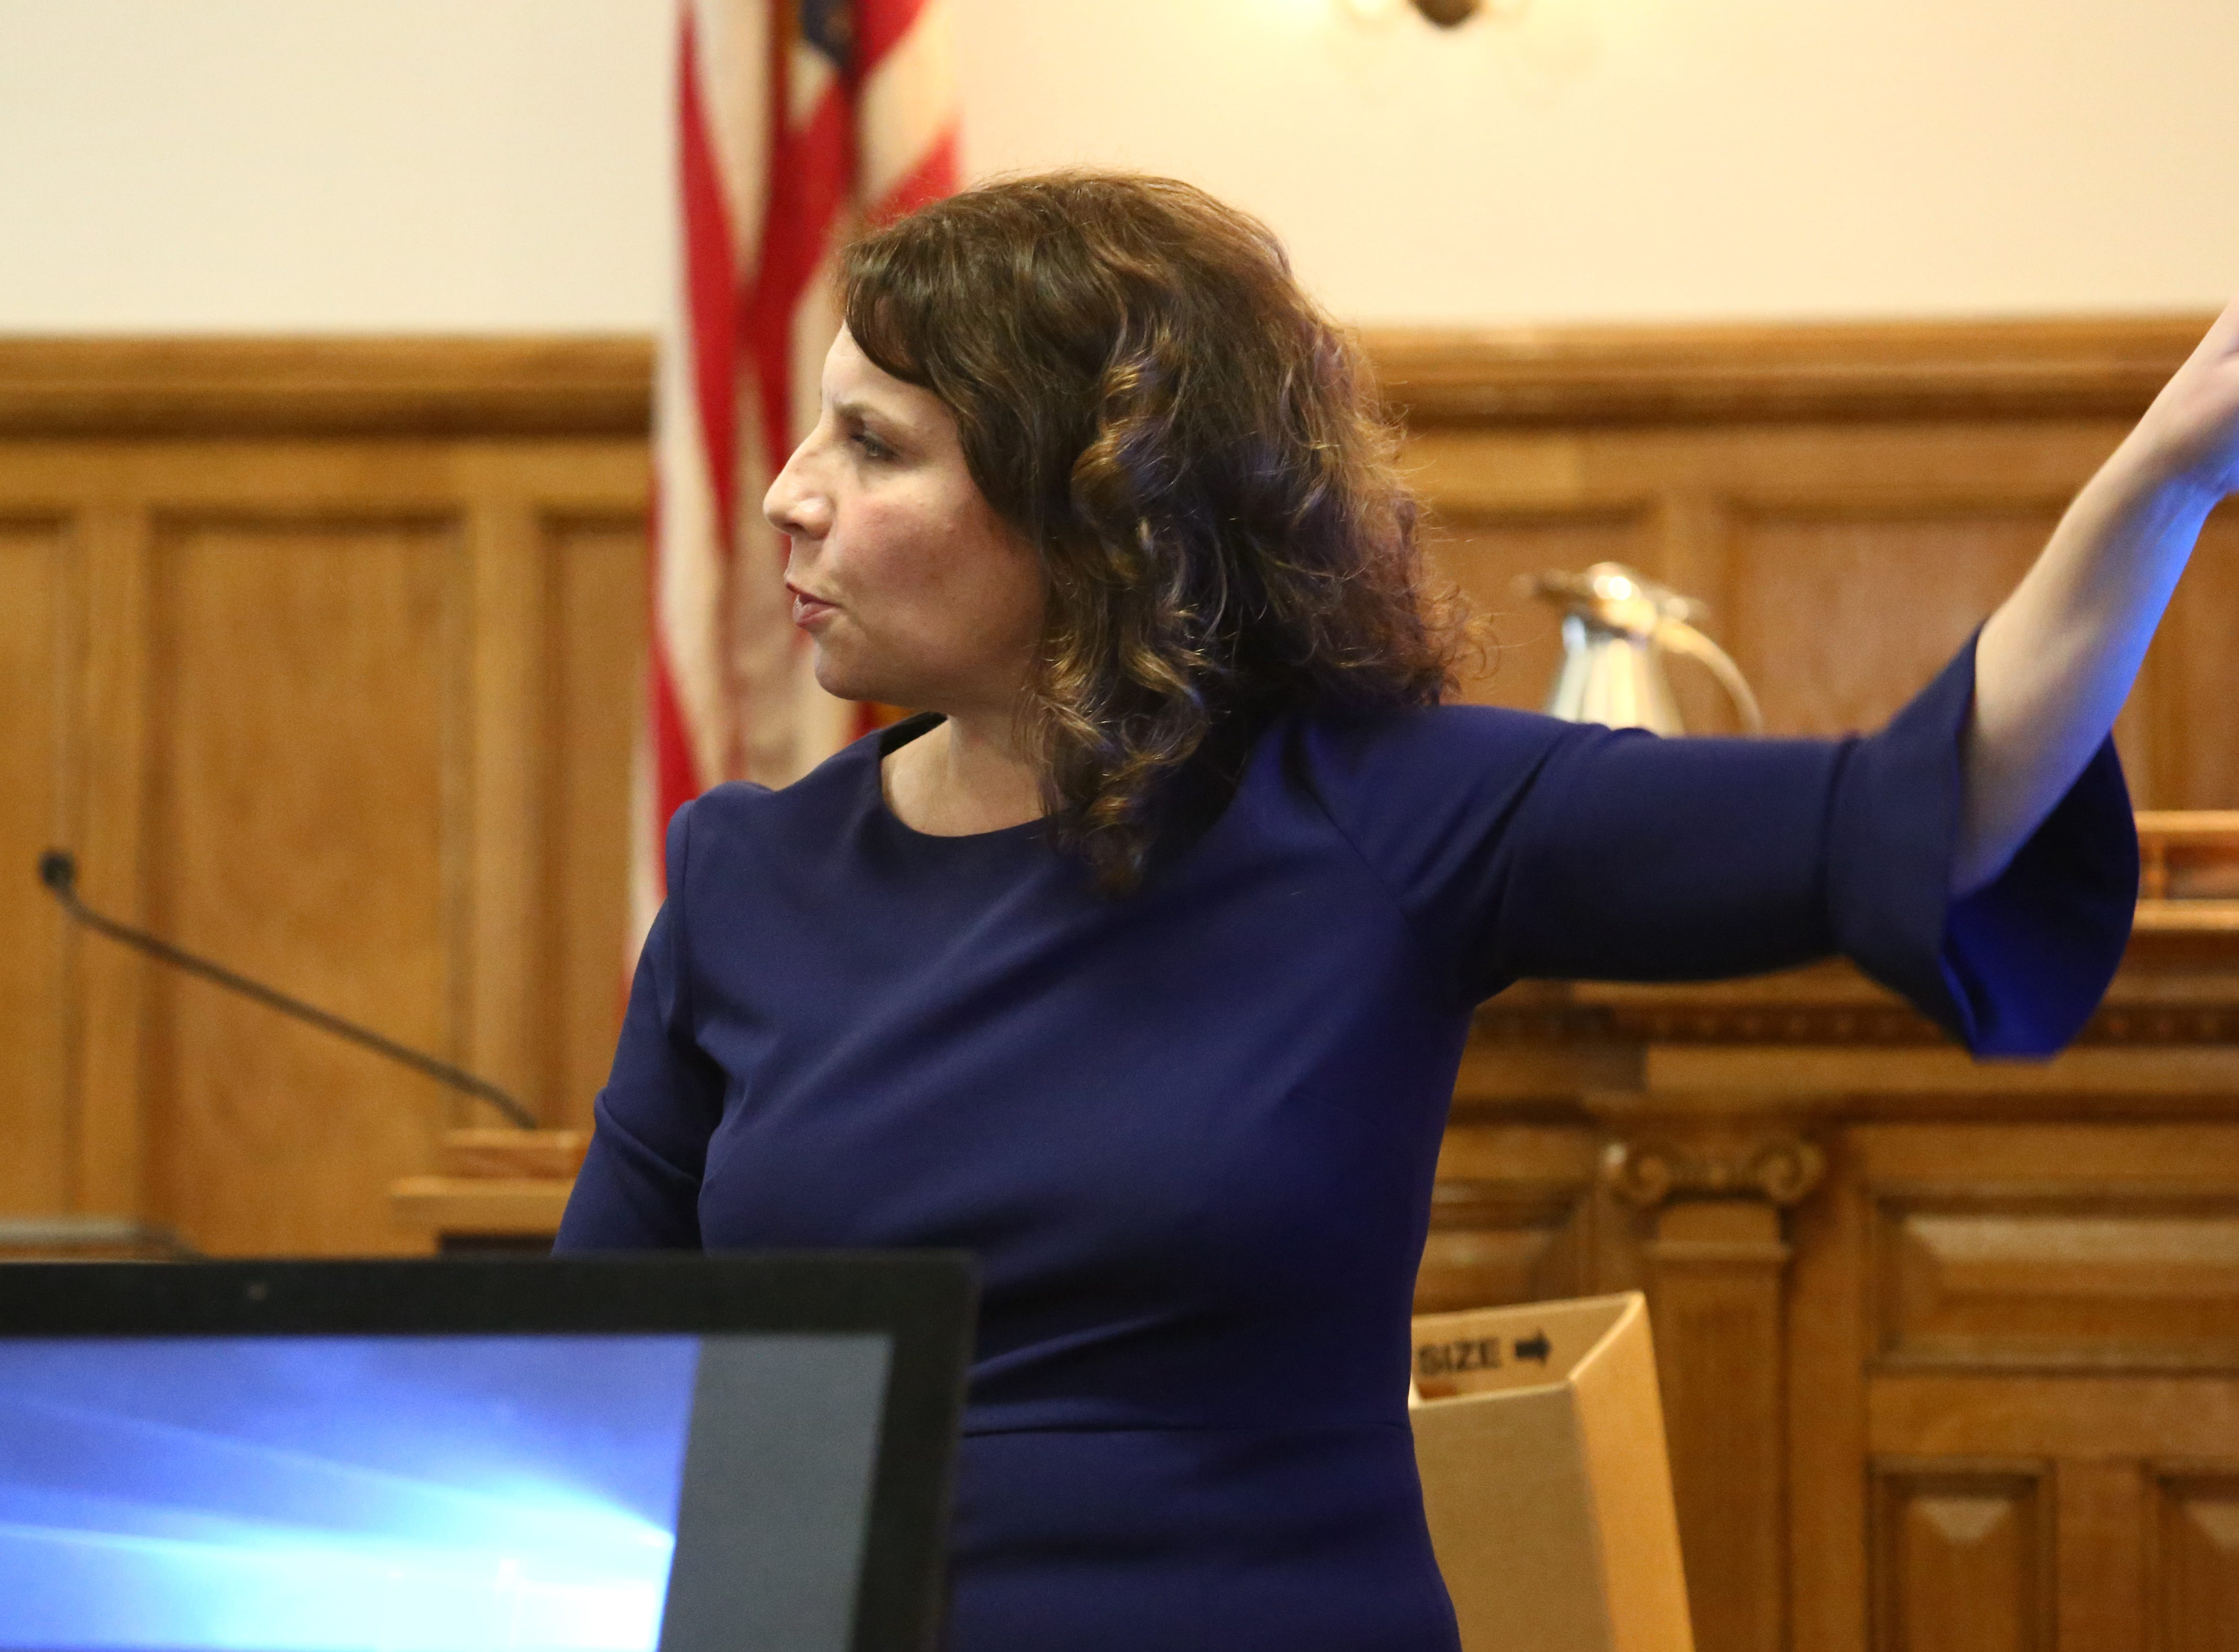 Putnam County assistant district attorney Chana Krauss makes her closing statement in the Nicole Addimando murder trial in Dutchess County Court on April 8, 2019.